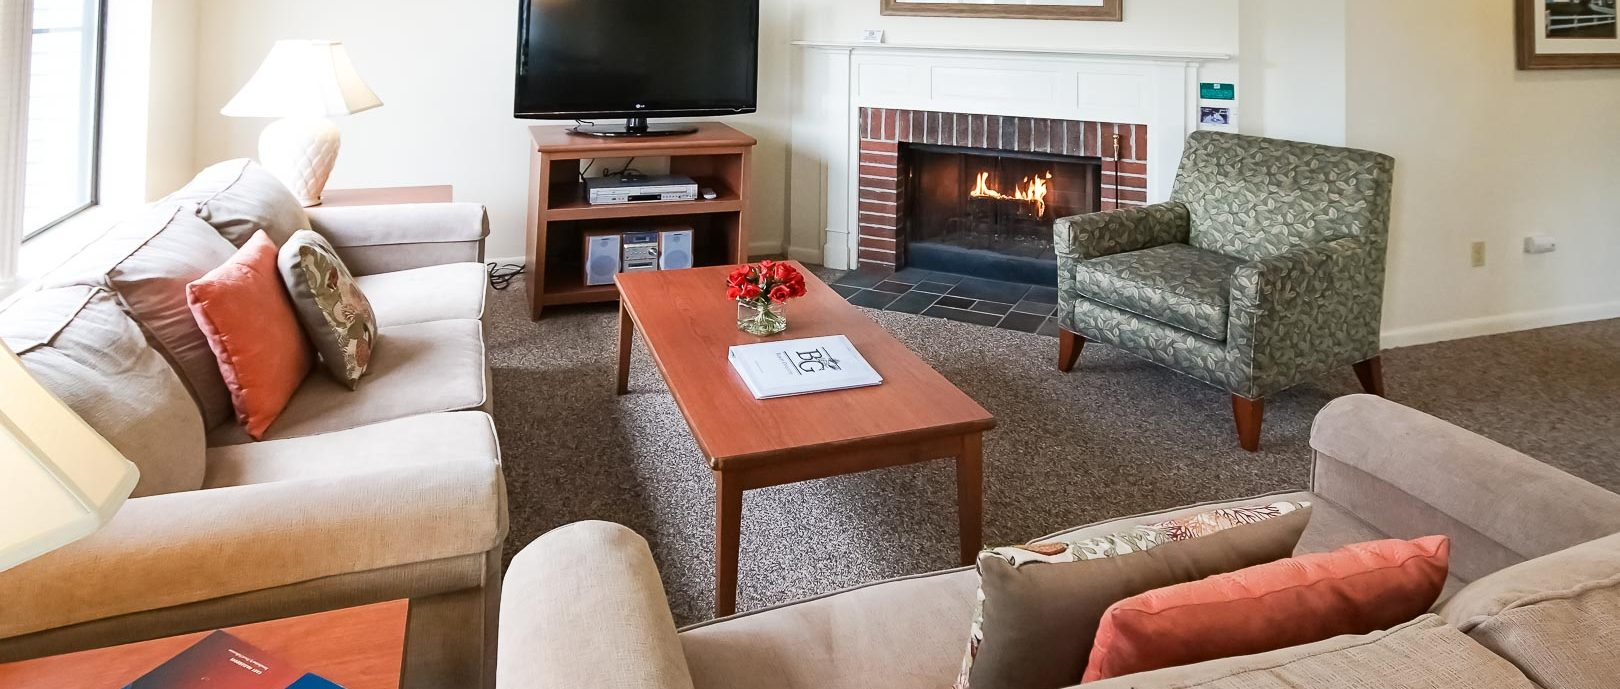 Astonishing Affordable Accommodations In Brewster Cape Cod Ma Ibusinesslaw Wood Chair Design Ideas Ibusinesslaworg